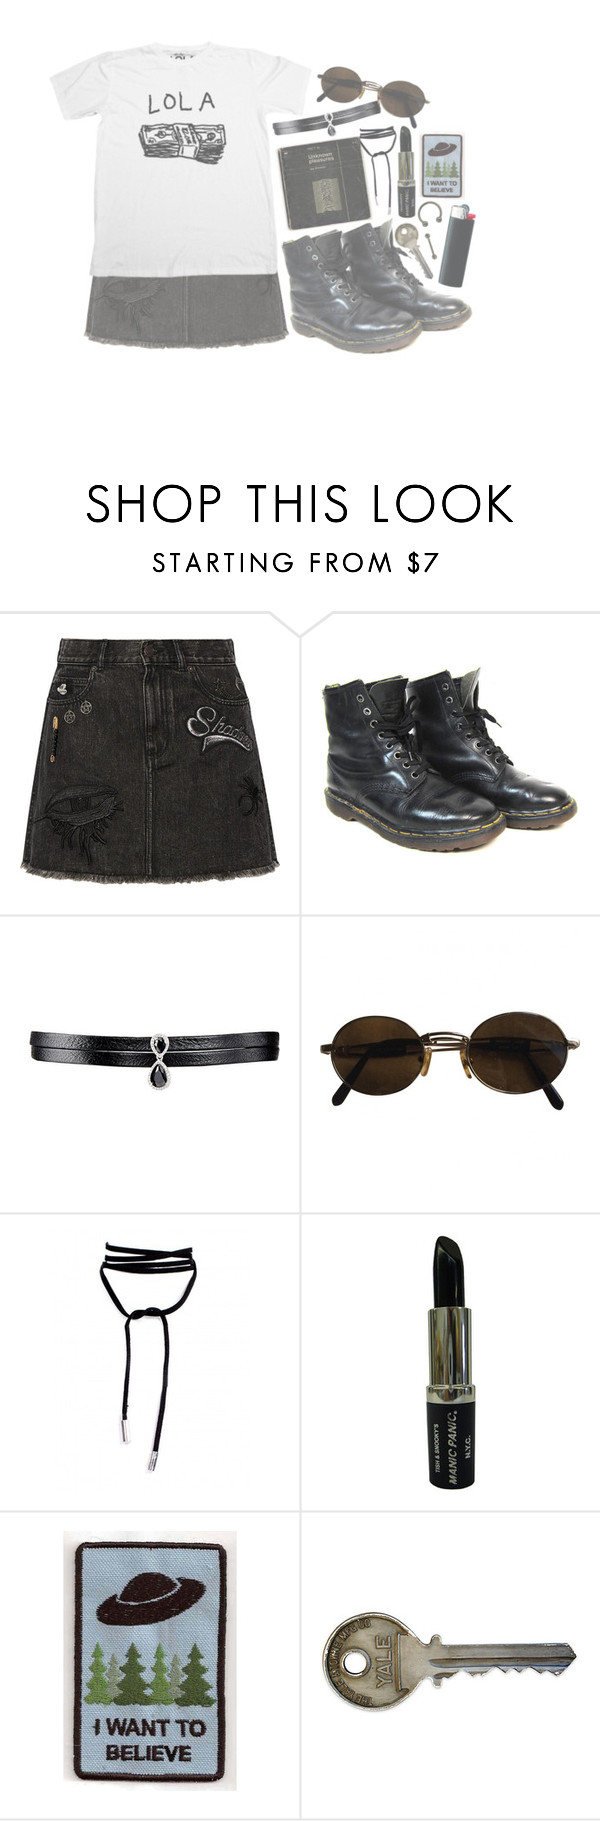 """""""And I'll never go home again"""" by i-am-not-the-enemy ❤ liked on Polyvore featuring Marc Jacobs, Dr. Martens, Fallon, Moschino and Manic Panic NYC"""